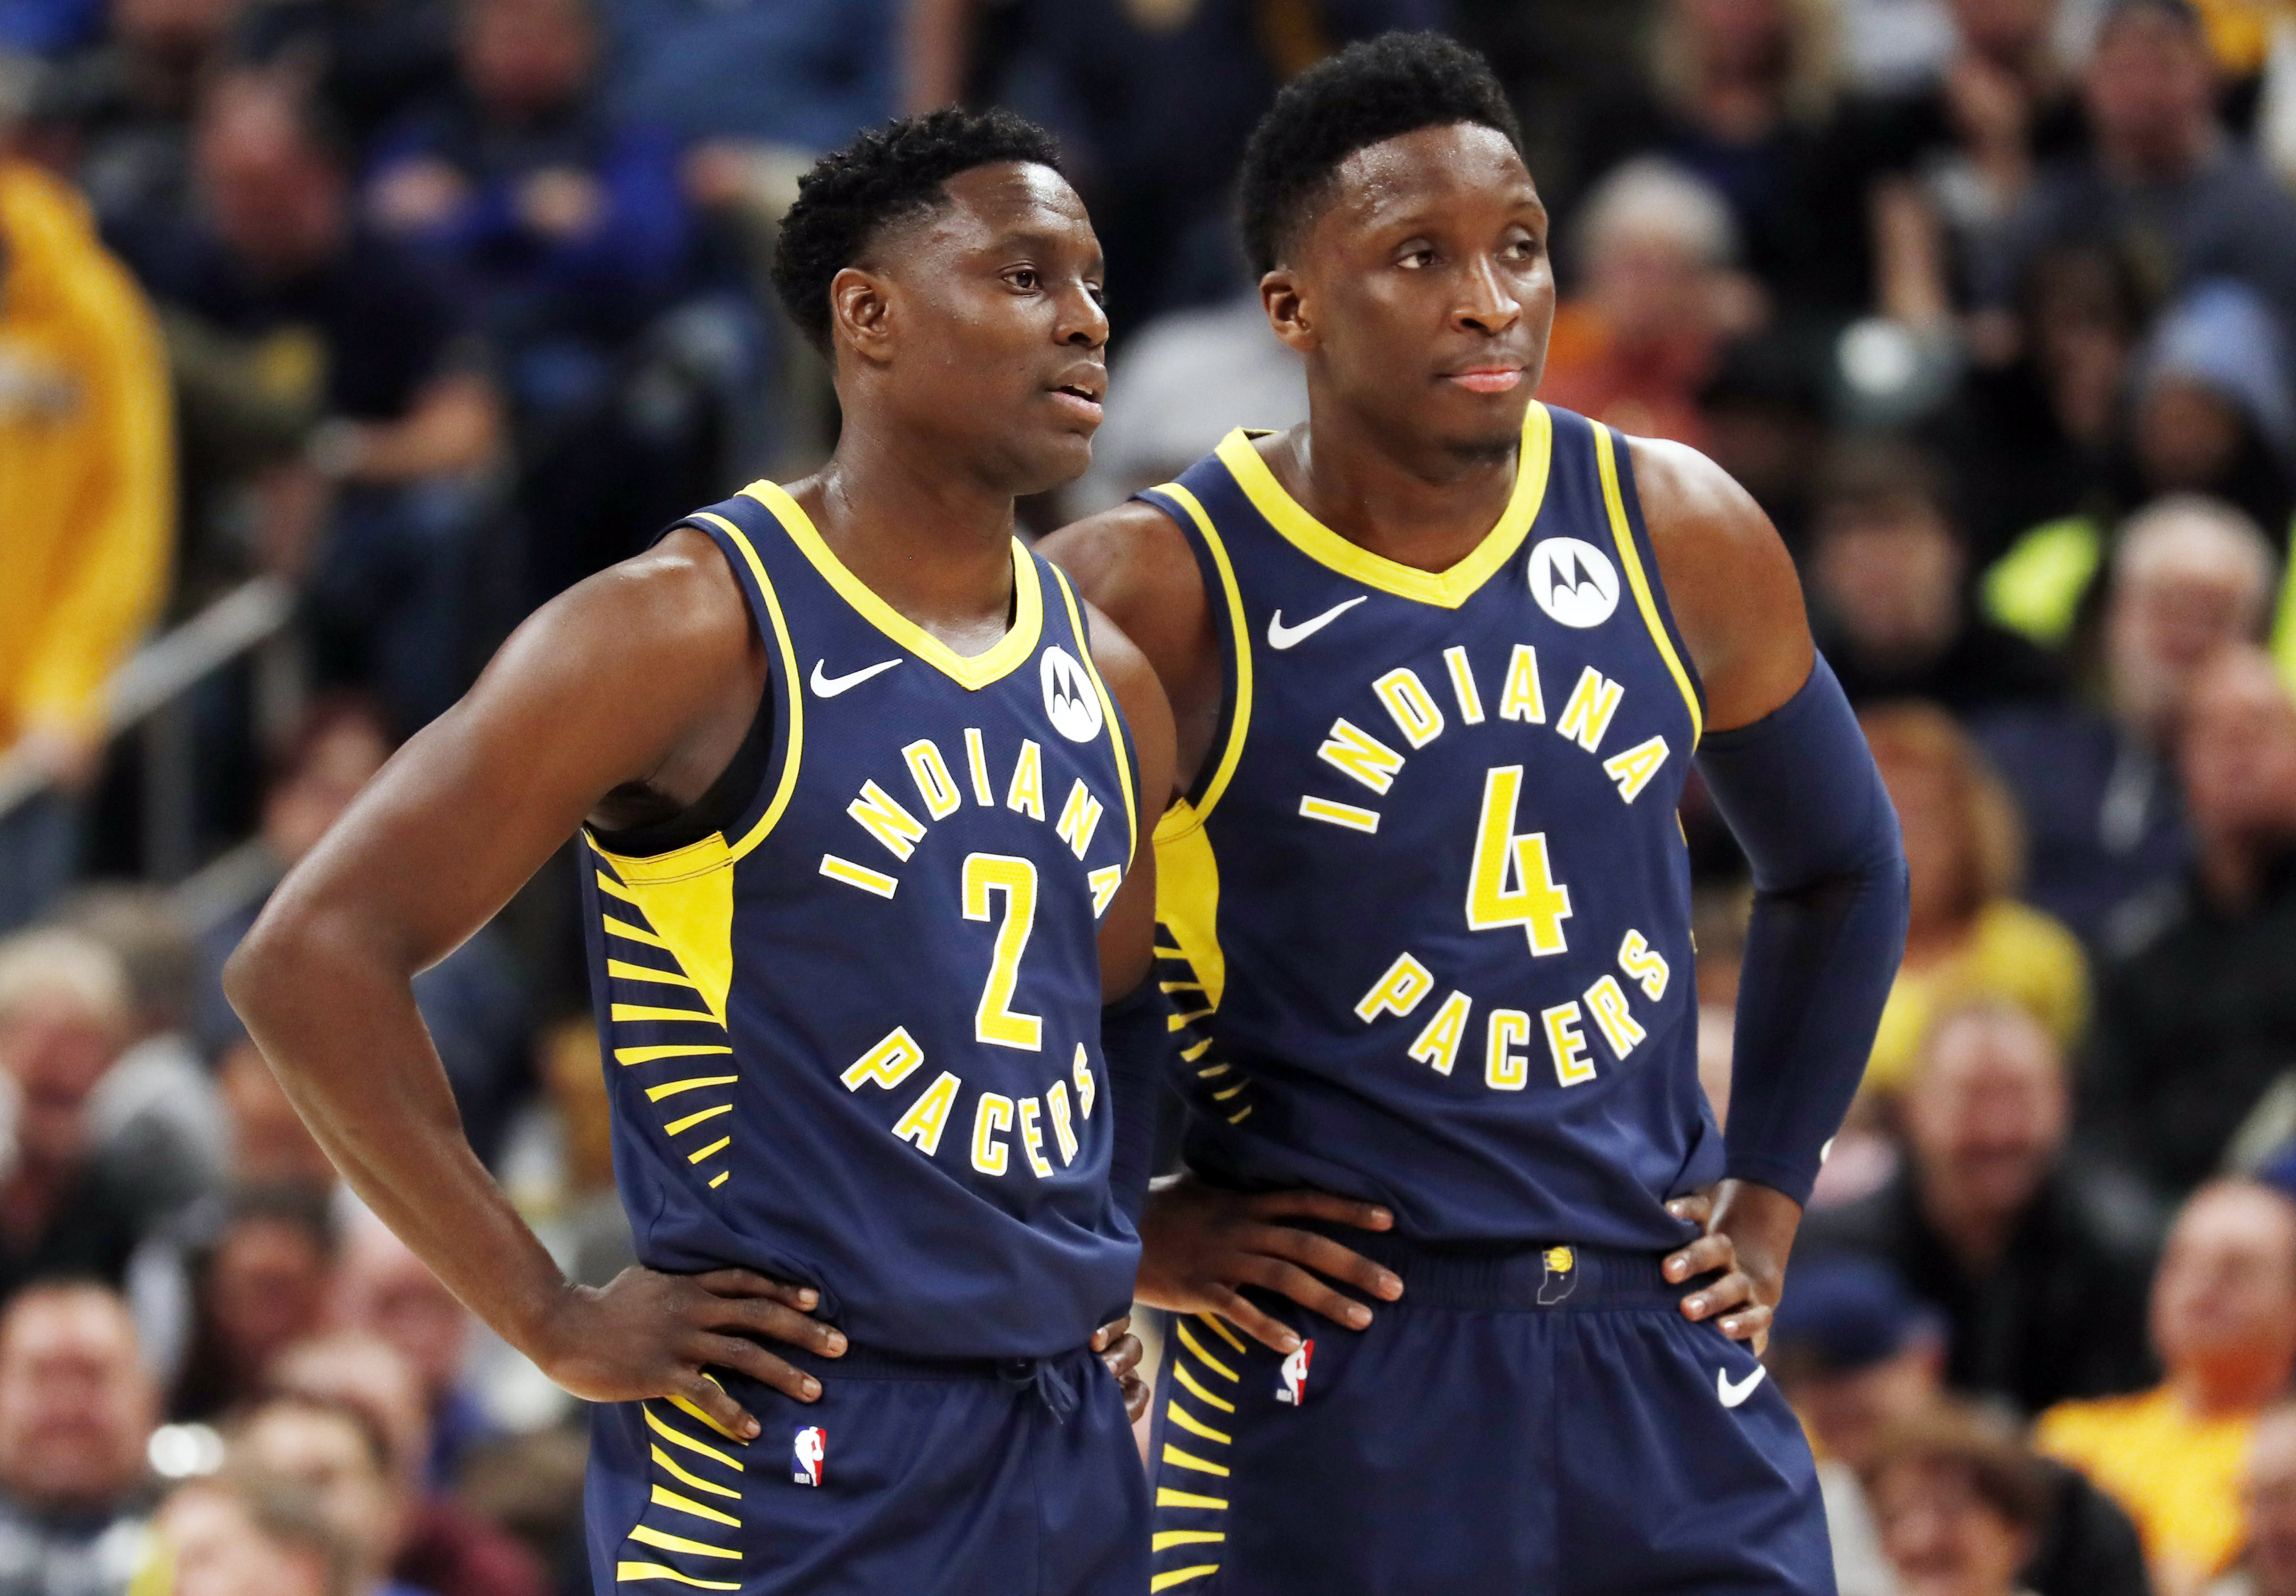 Indiana Pacers free agency: How do they get Victor Oladipo over the hump?